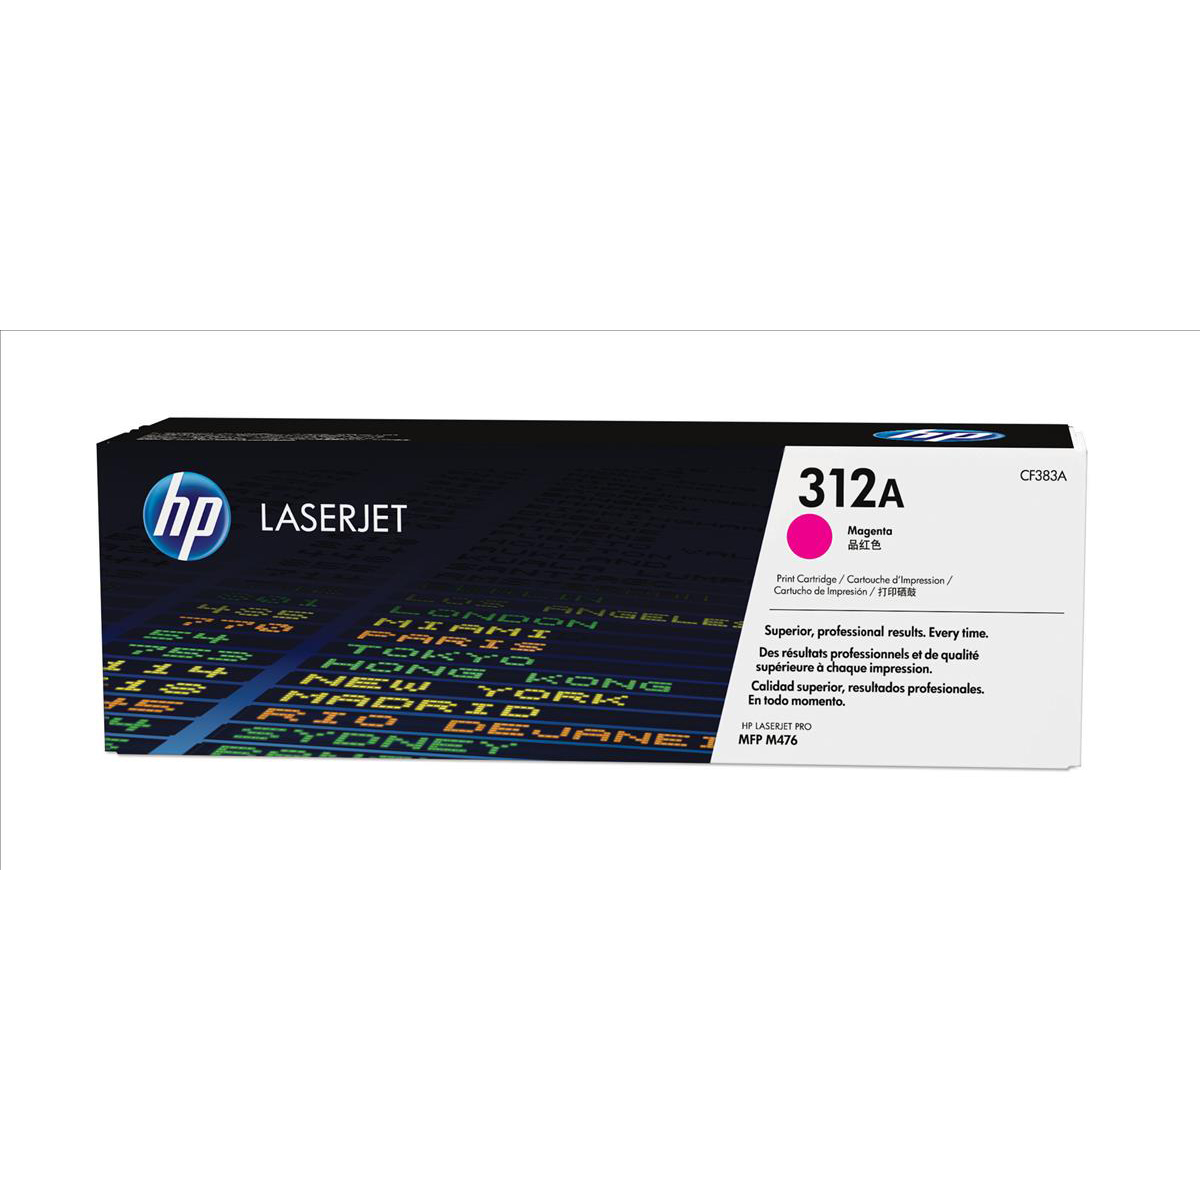 HP 312A Laser Toner Cartridge Page Life 2700pp Magenta Ref CF383A